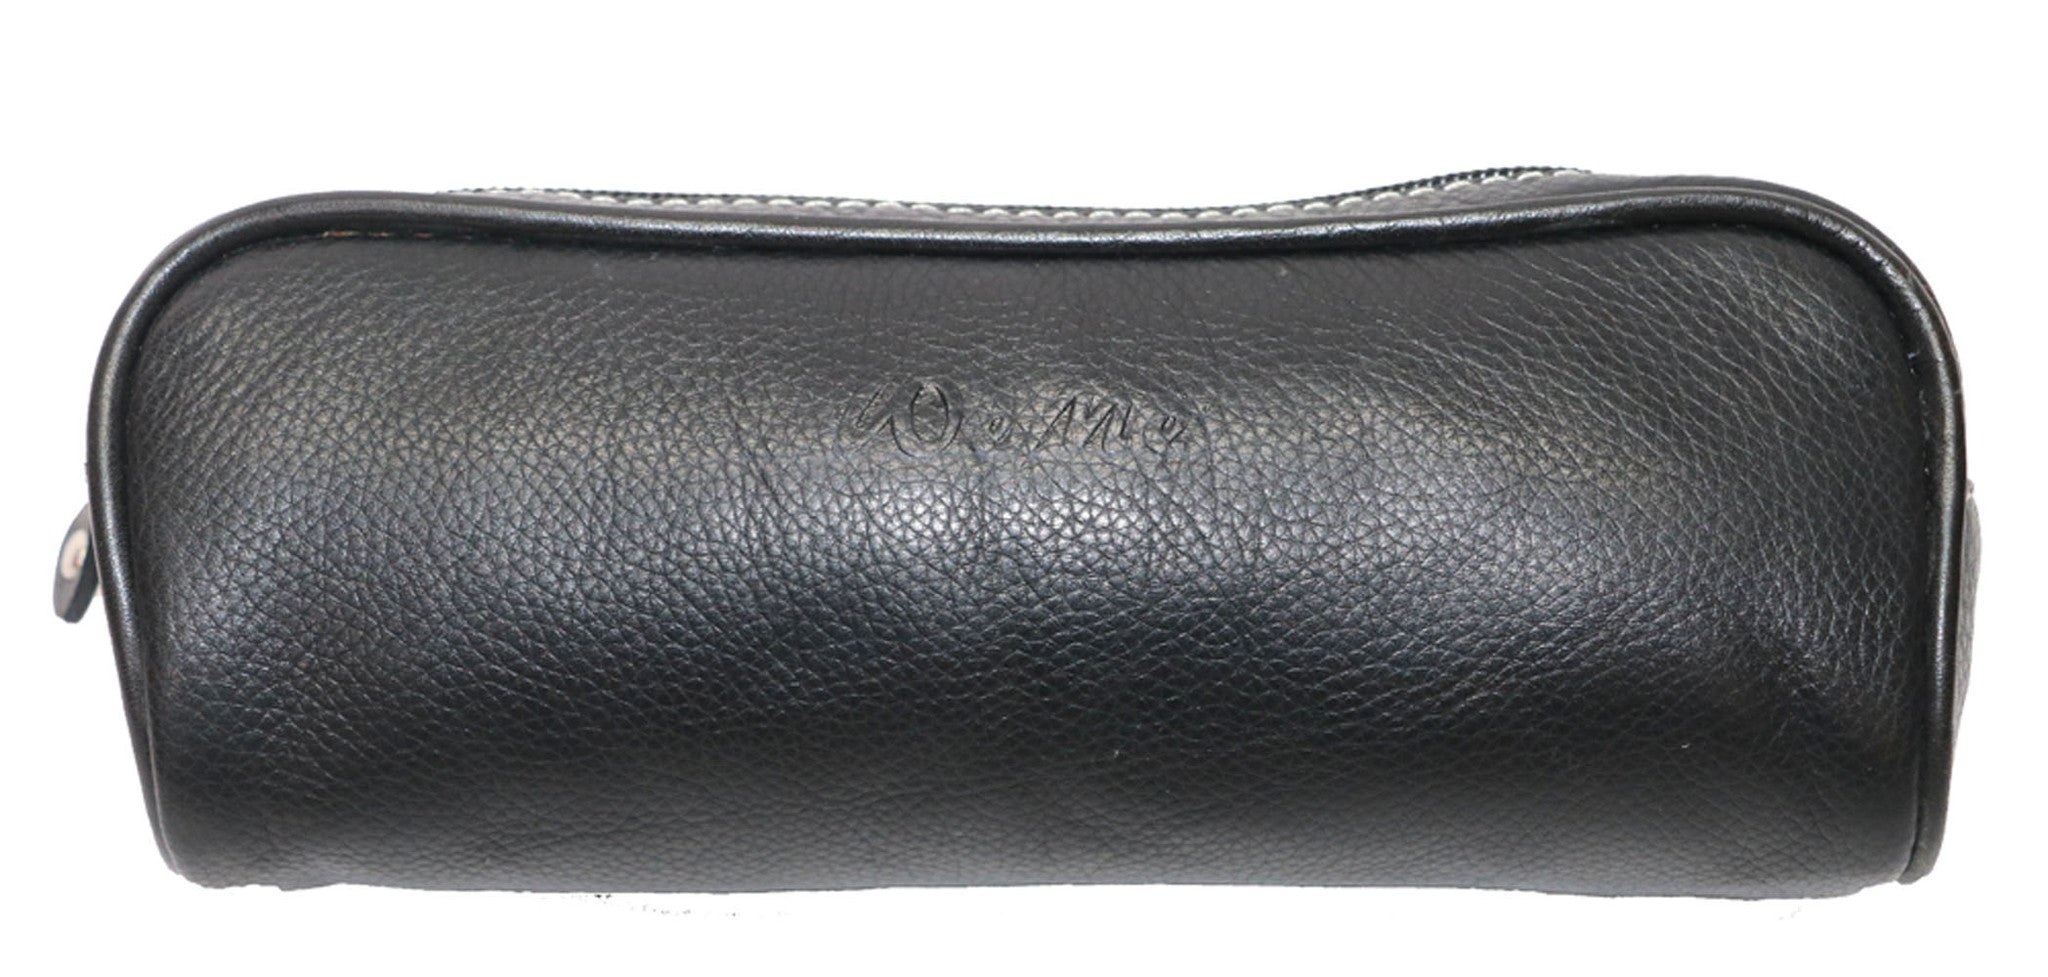 Classic Genuine Leather Unisex Black Pencil Case - WeMe